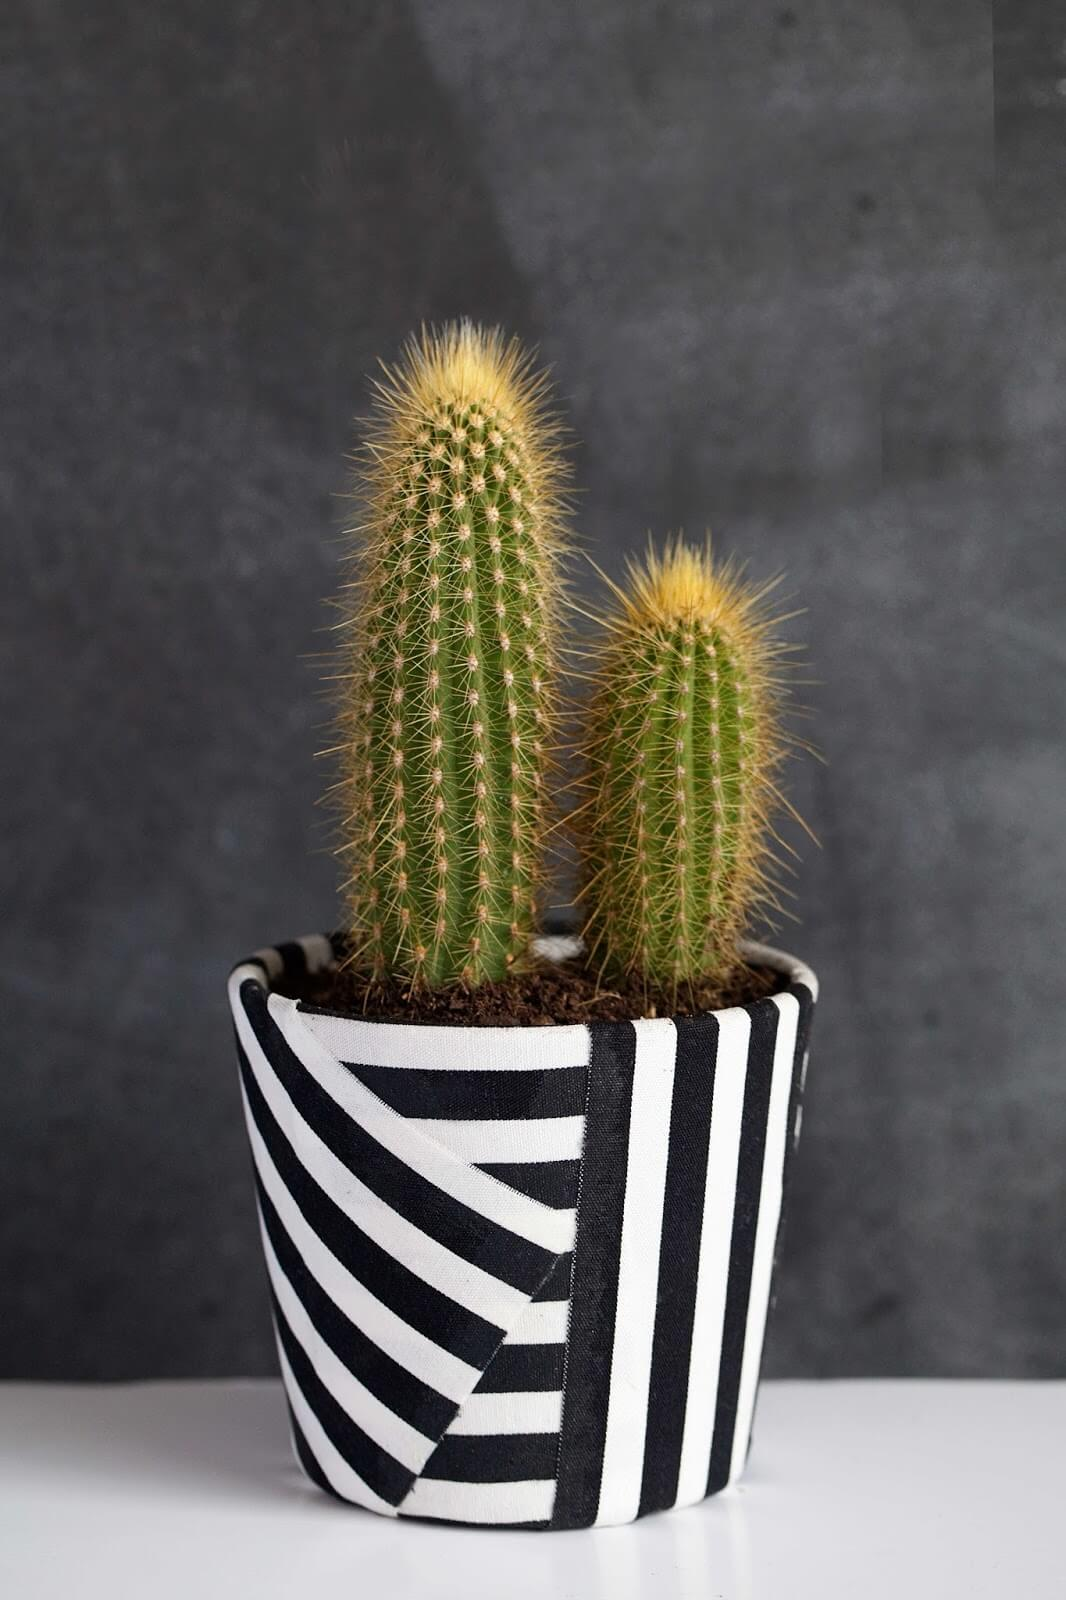 12 IKEA Hacks to Try in 2018 - fabric wrapped plant pot